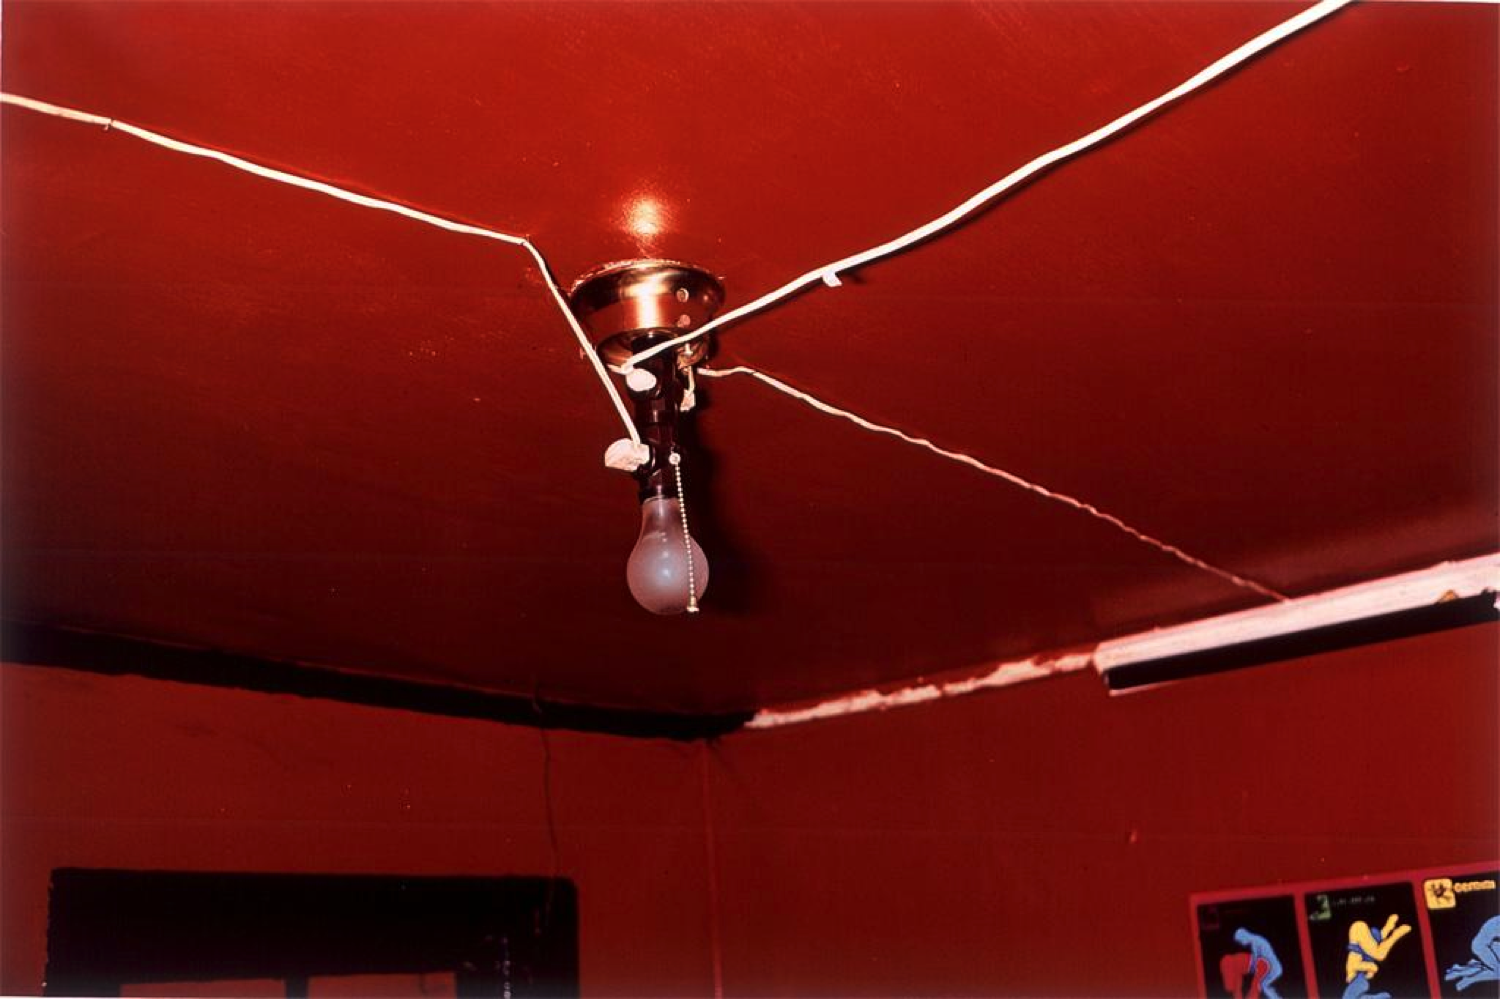 William Eggleston, The Red Celling, Greenwood, Mississippi, 1973